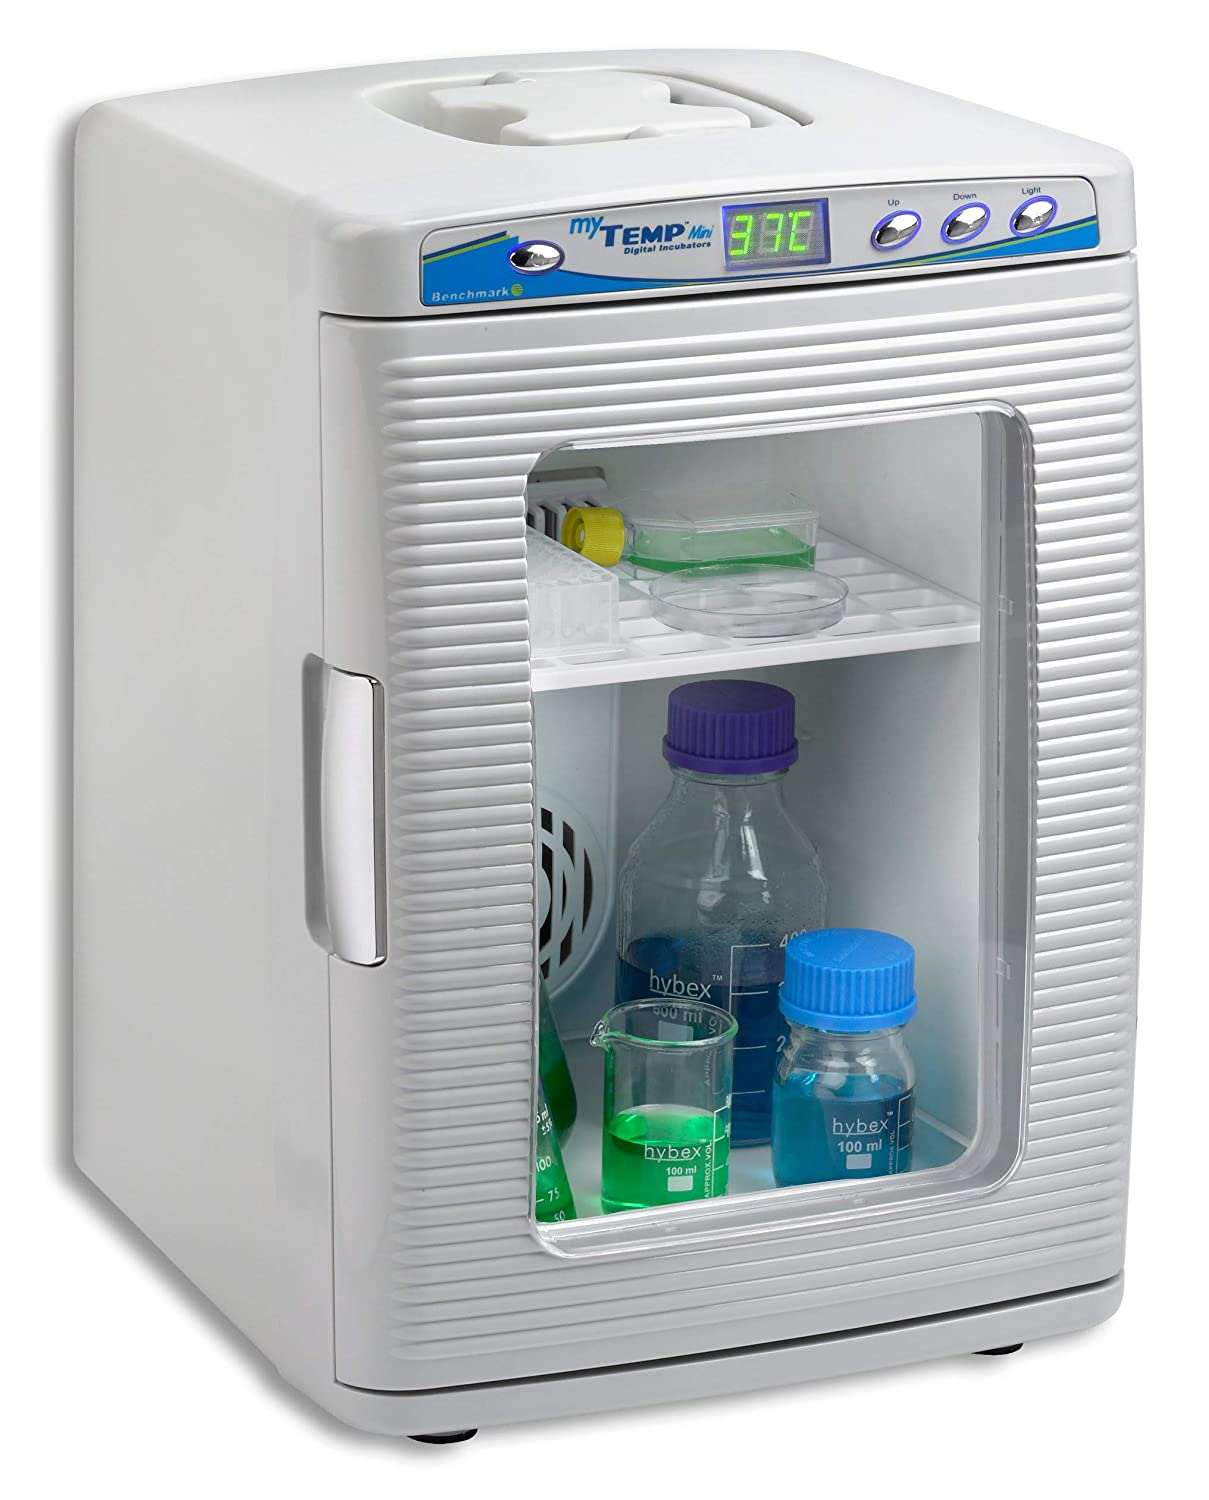 Benchmark Scientific H2200-HC MyTemp Mini Digital Incubator with Heating and Cooling, 115V